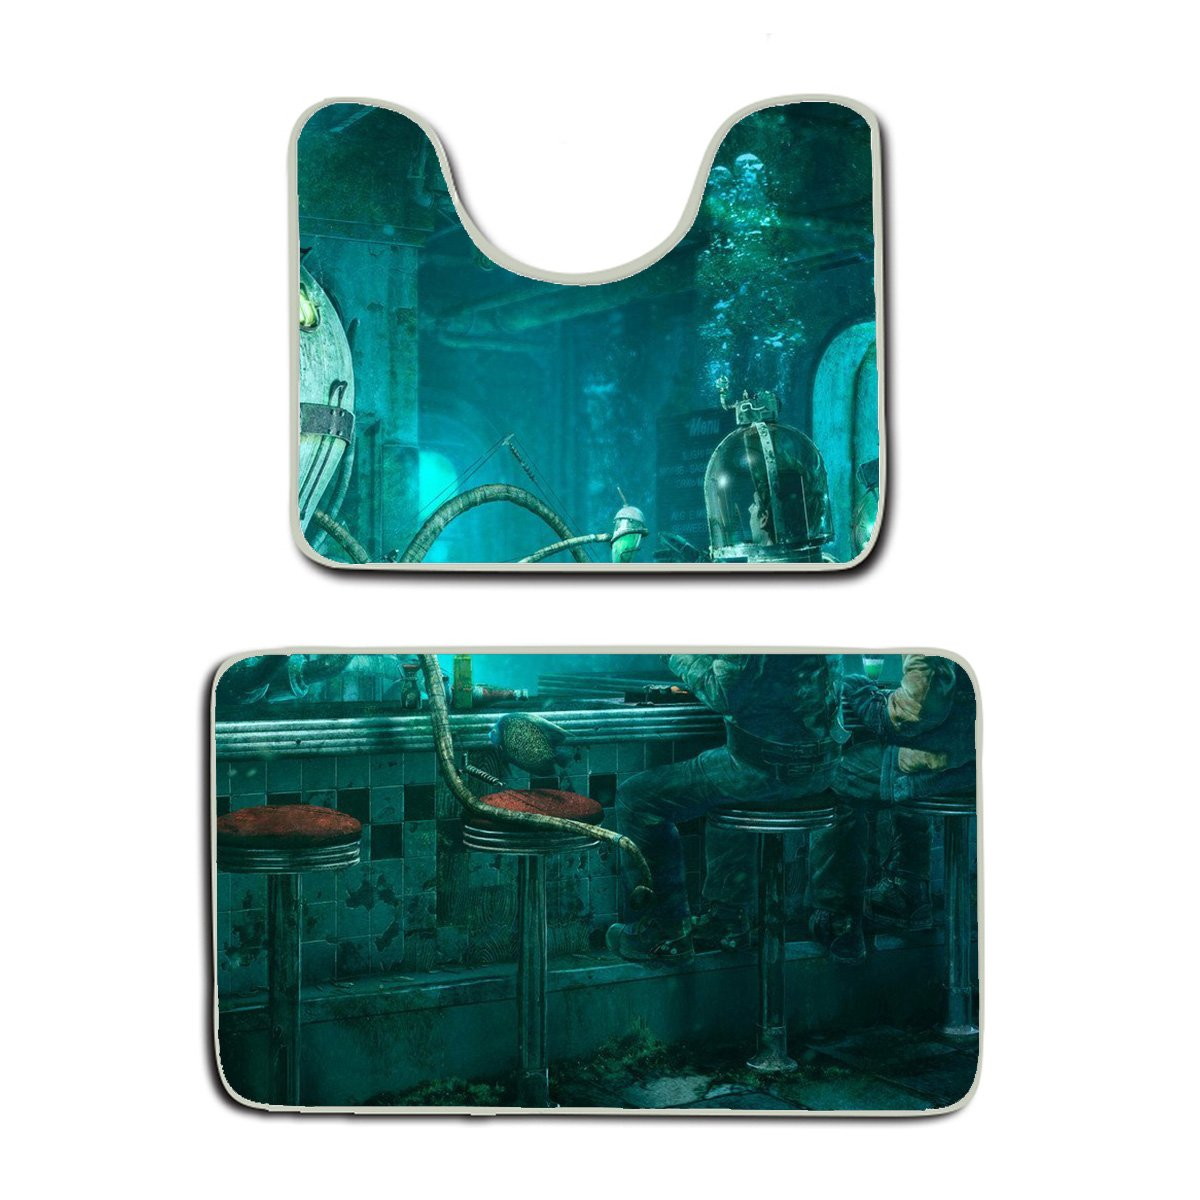 AMERICAN TANG Memory Foam 2 piece bathroom rug set - Steampunk Octopus Video Game Art Nautical - Skidproof bath Mat And Toilet Seat Contour Cover rug